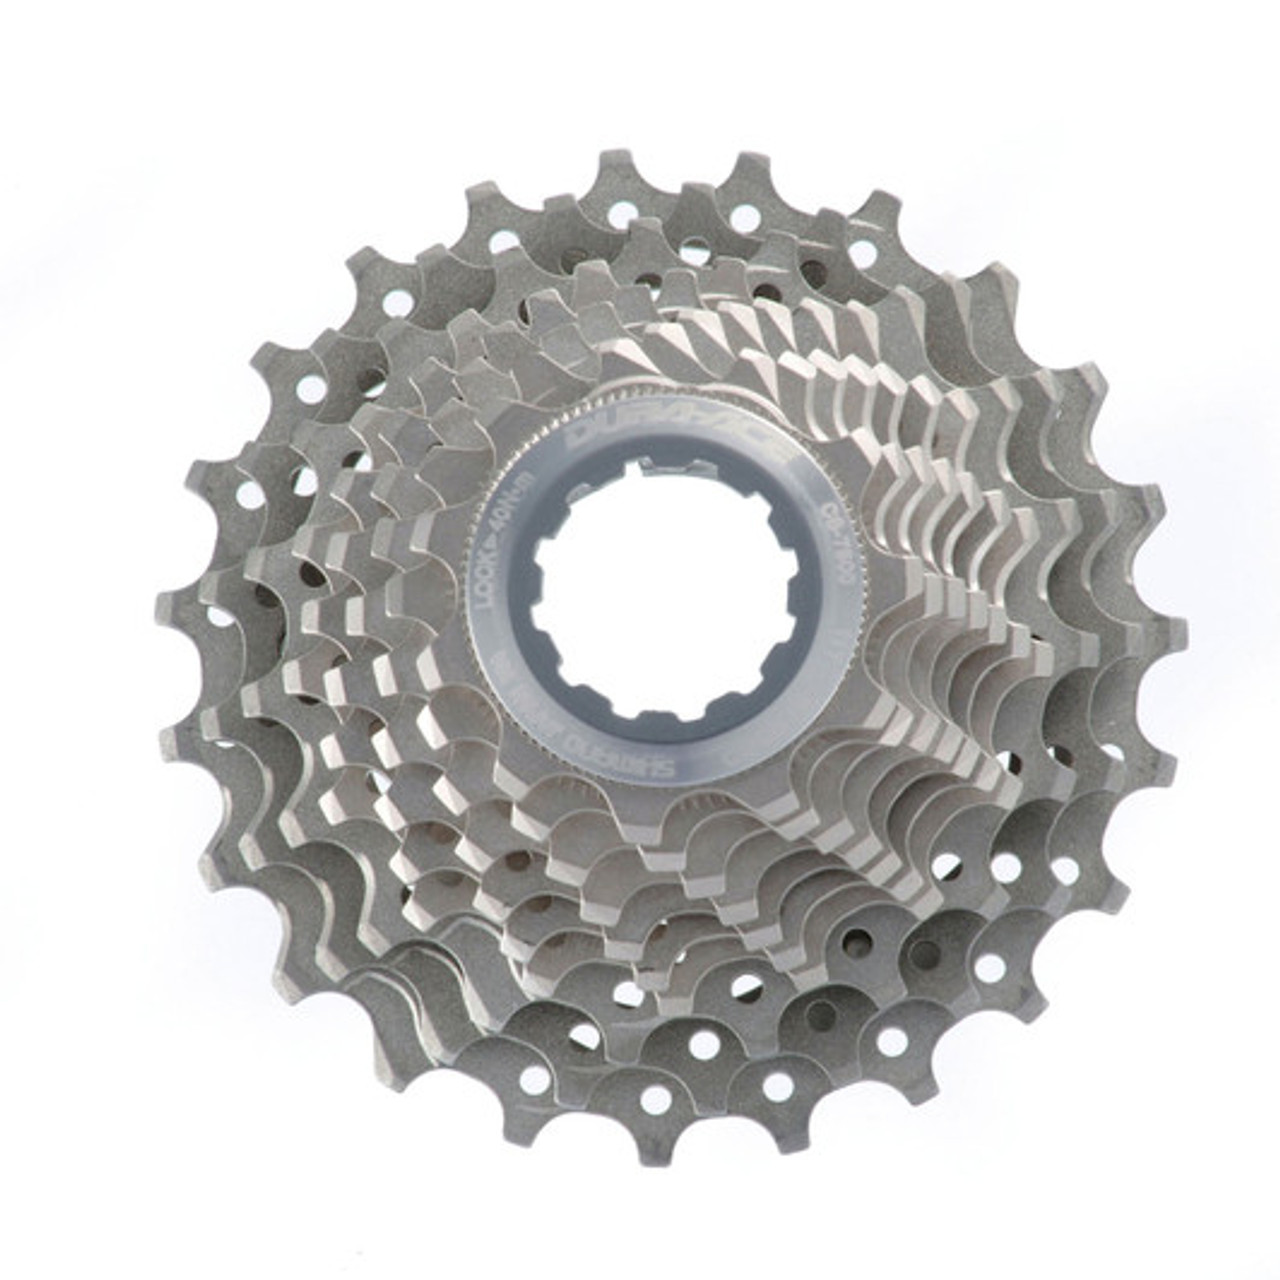 Shimano Dura-Ace 7800 10 Speed Cassette | All Ratios | CS-7800